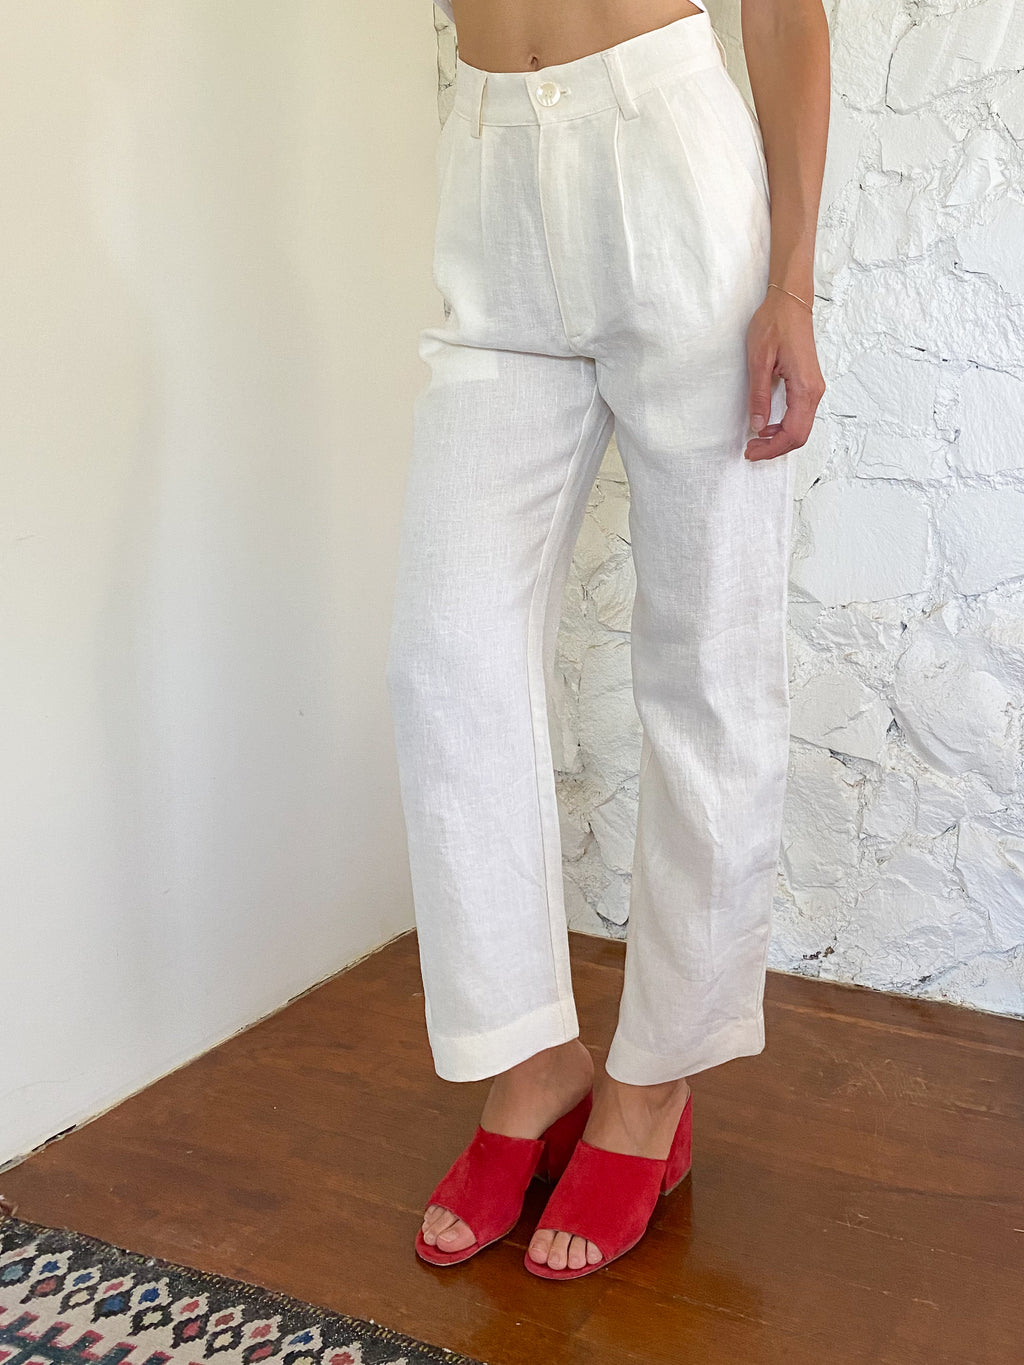 The Pants - Cream Linen